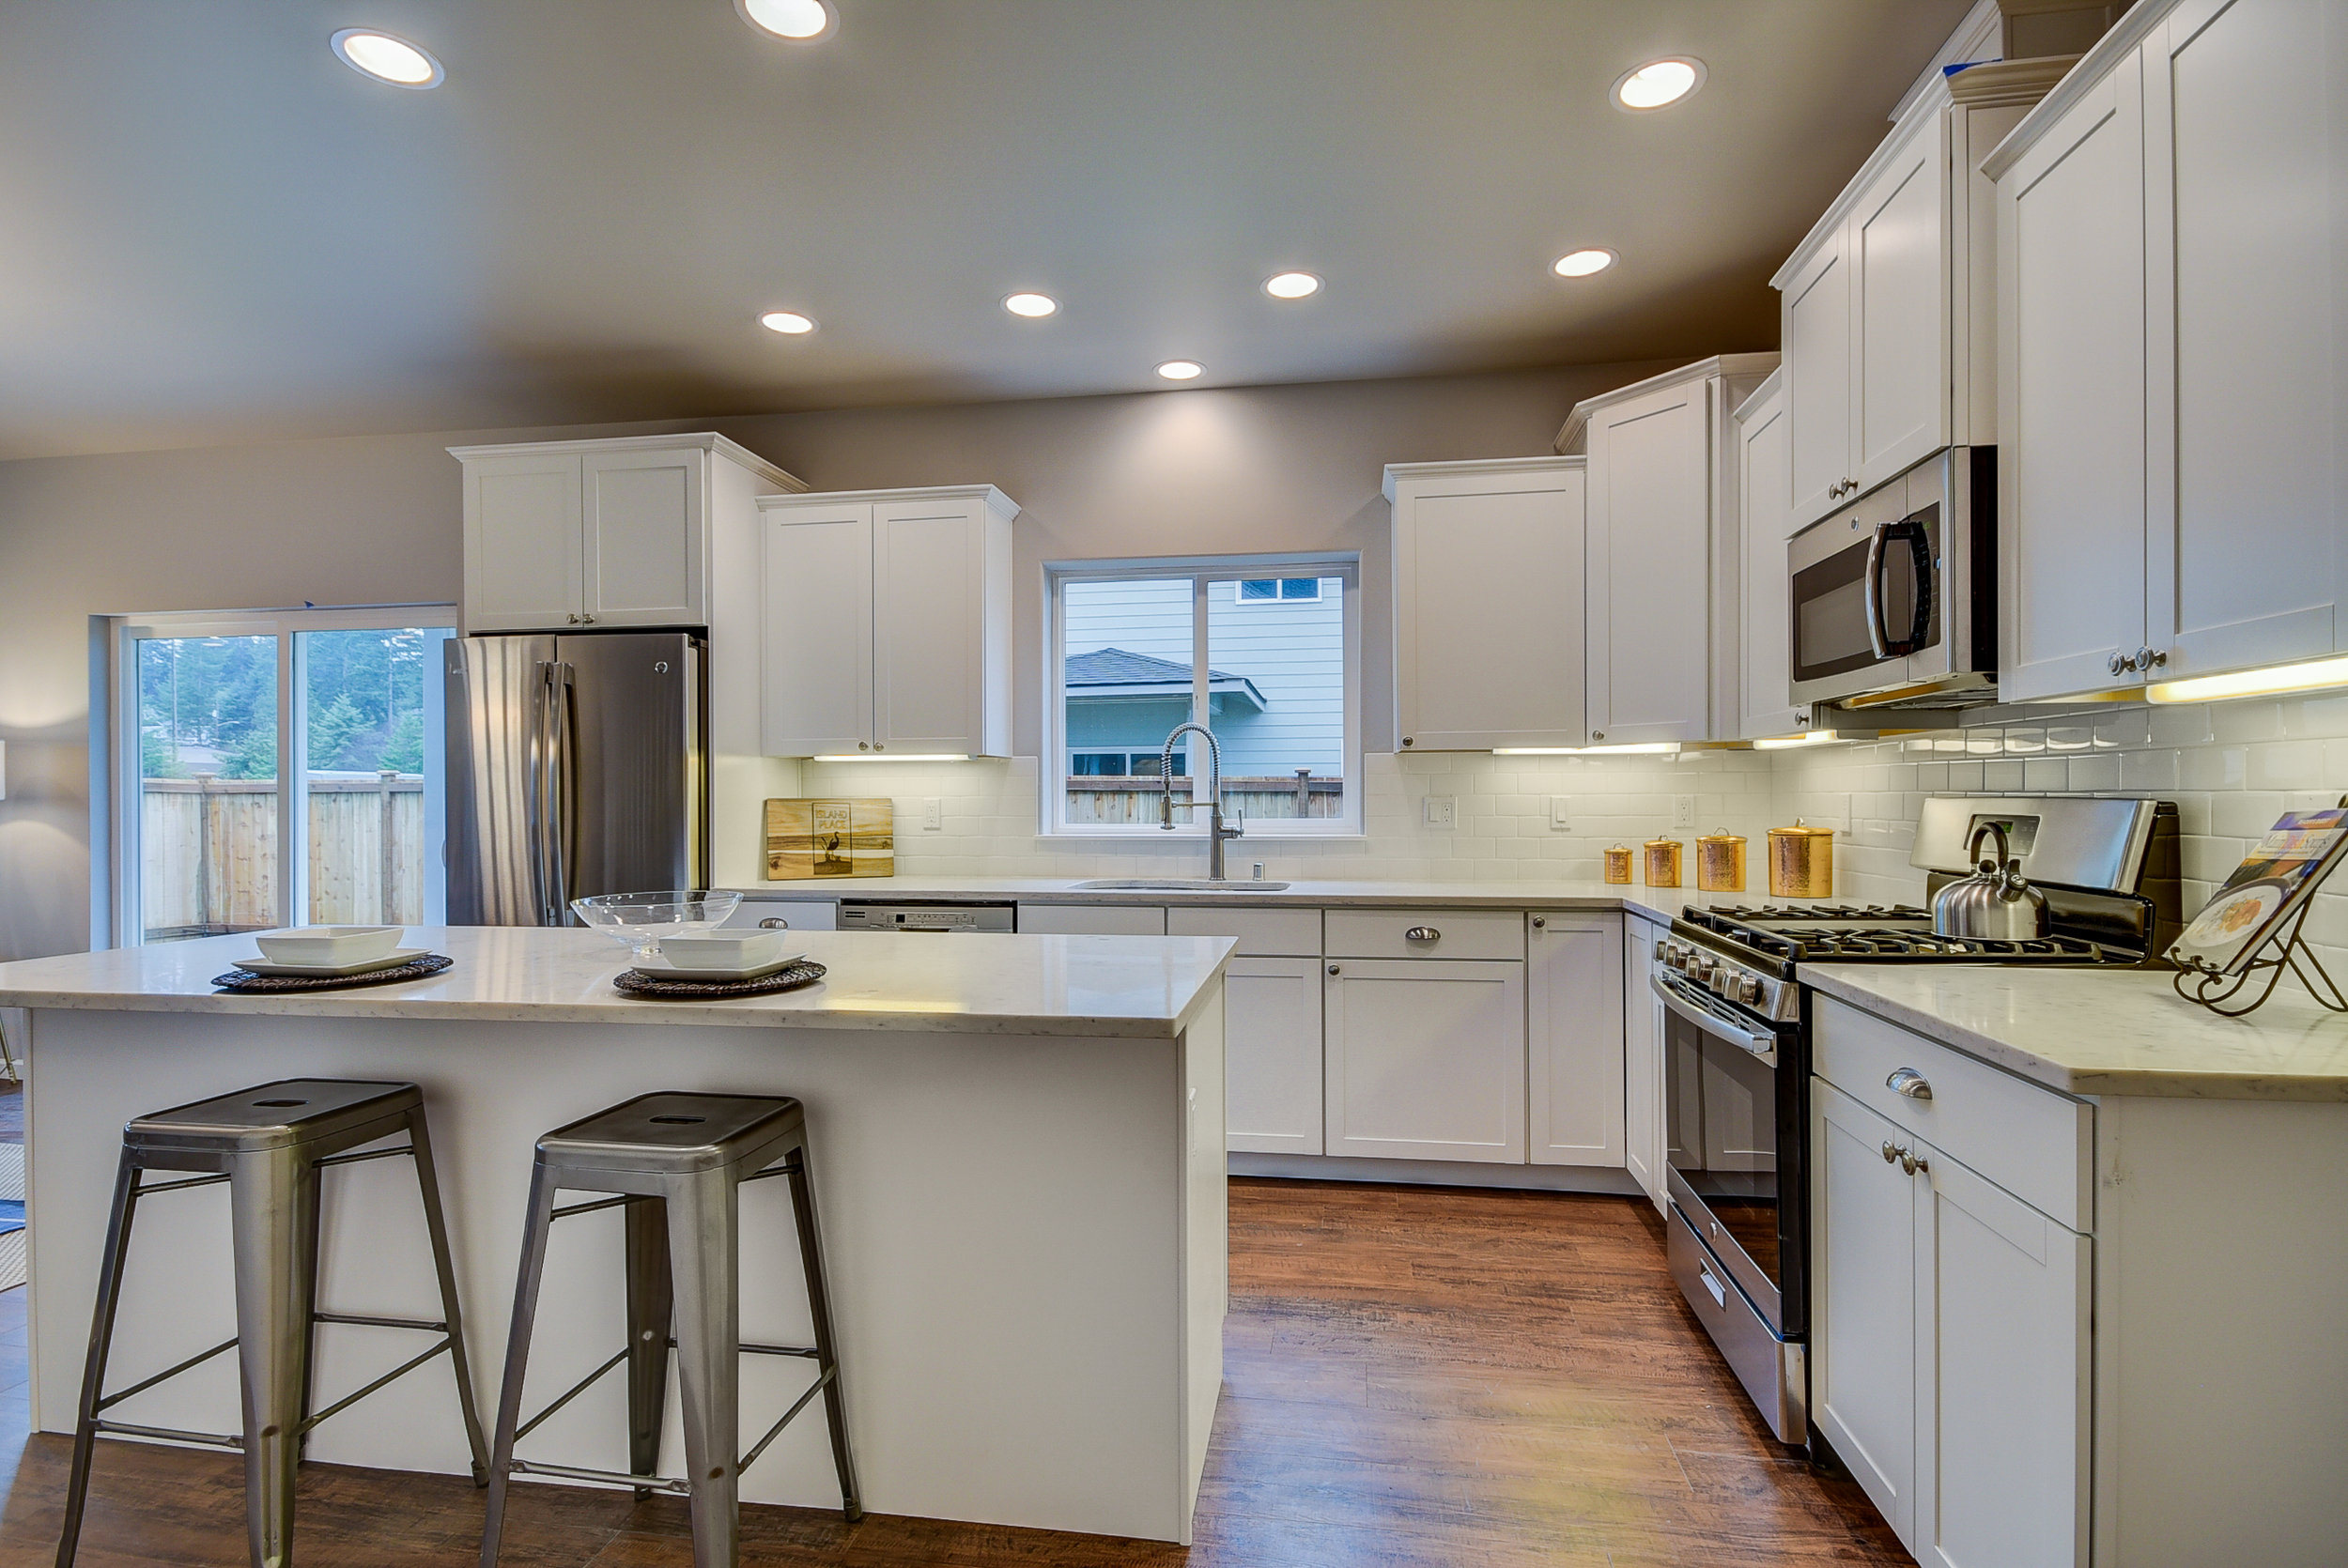 """Yes...this gorgeous kitchen raises the bar for a """"standard model"""" kitchen... It will be an oasis for sophisticated foodies........."""